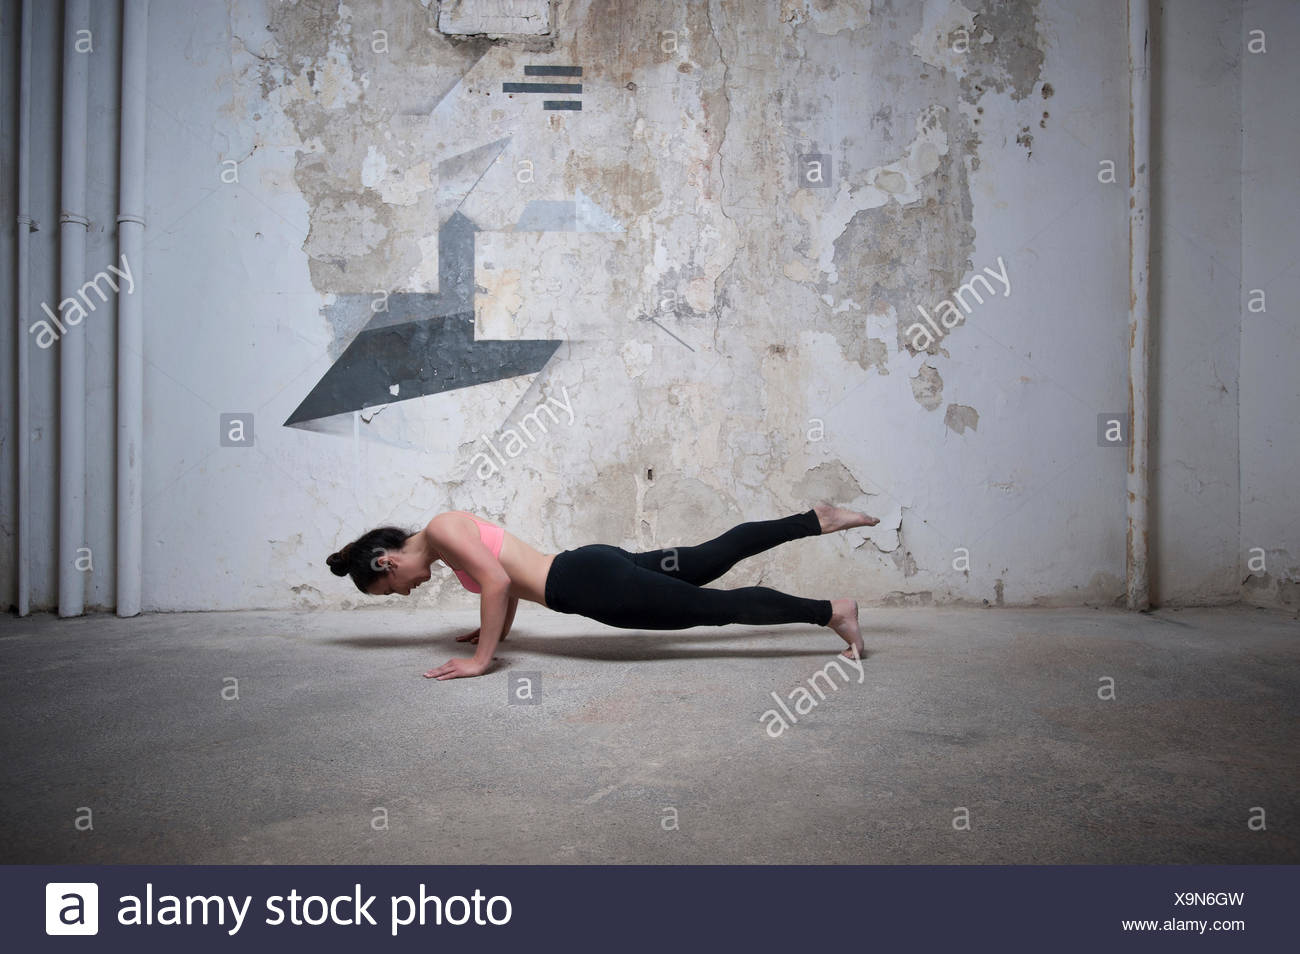 Mid adult woman practicing plank pose in yoga studio, Munich, Bavaria, Germany - Stock Image